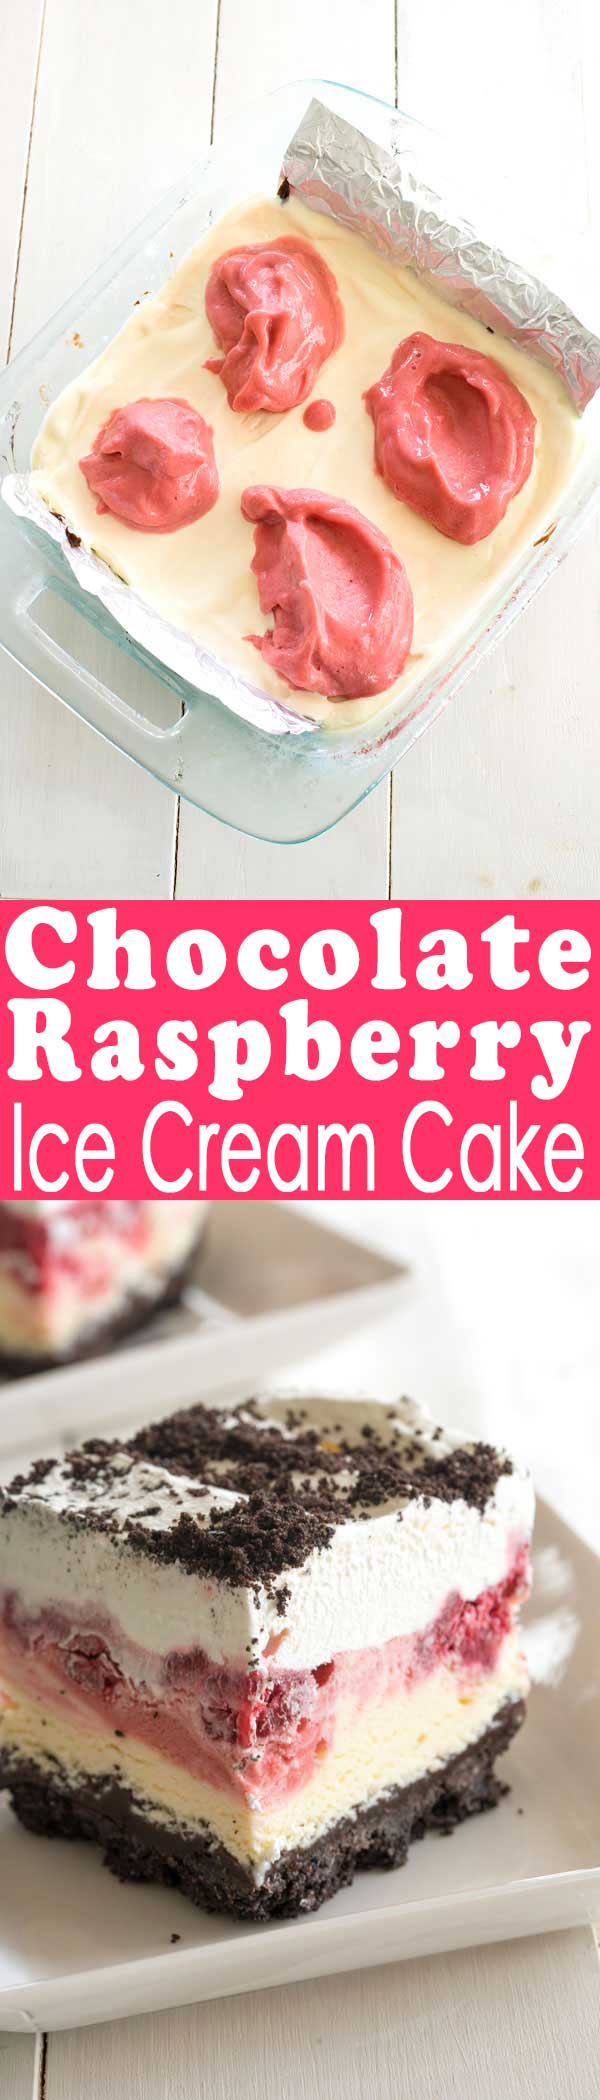 No bake frozen chocolate Raspberry Dessert with Oreo cookie crust. Looks so fancy but easy to make! #dessert #nobake #icecream #dessertrecipes #foodgawker #oreo #cake